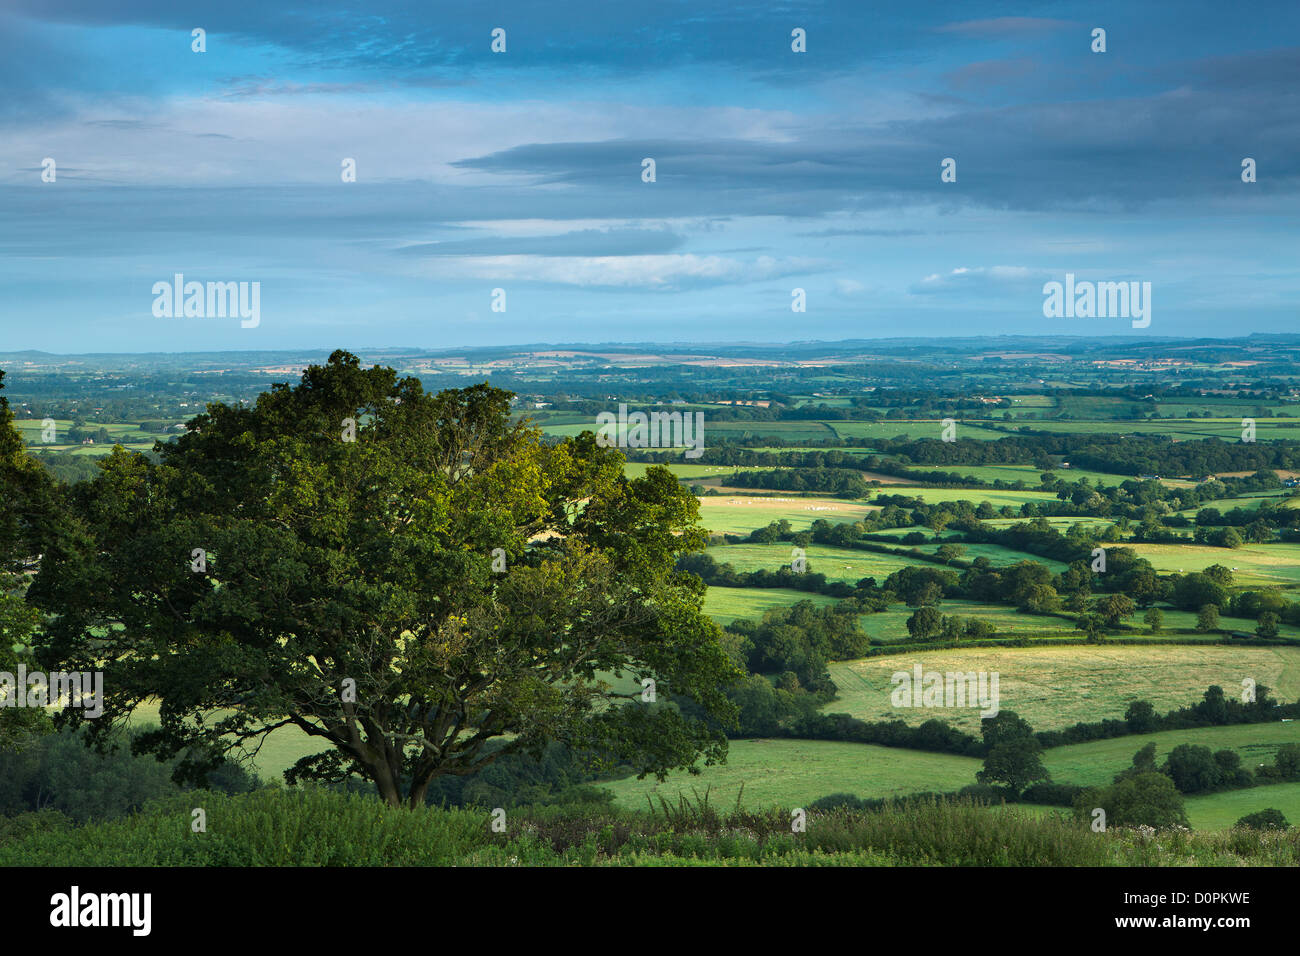 The Blackmore Vale from Bulbarrow Hill, Dorset, England, UK - Stock Image